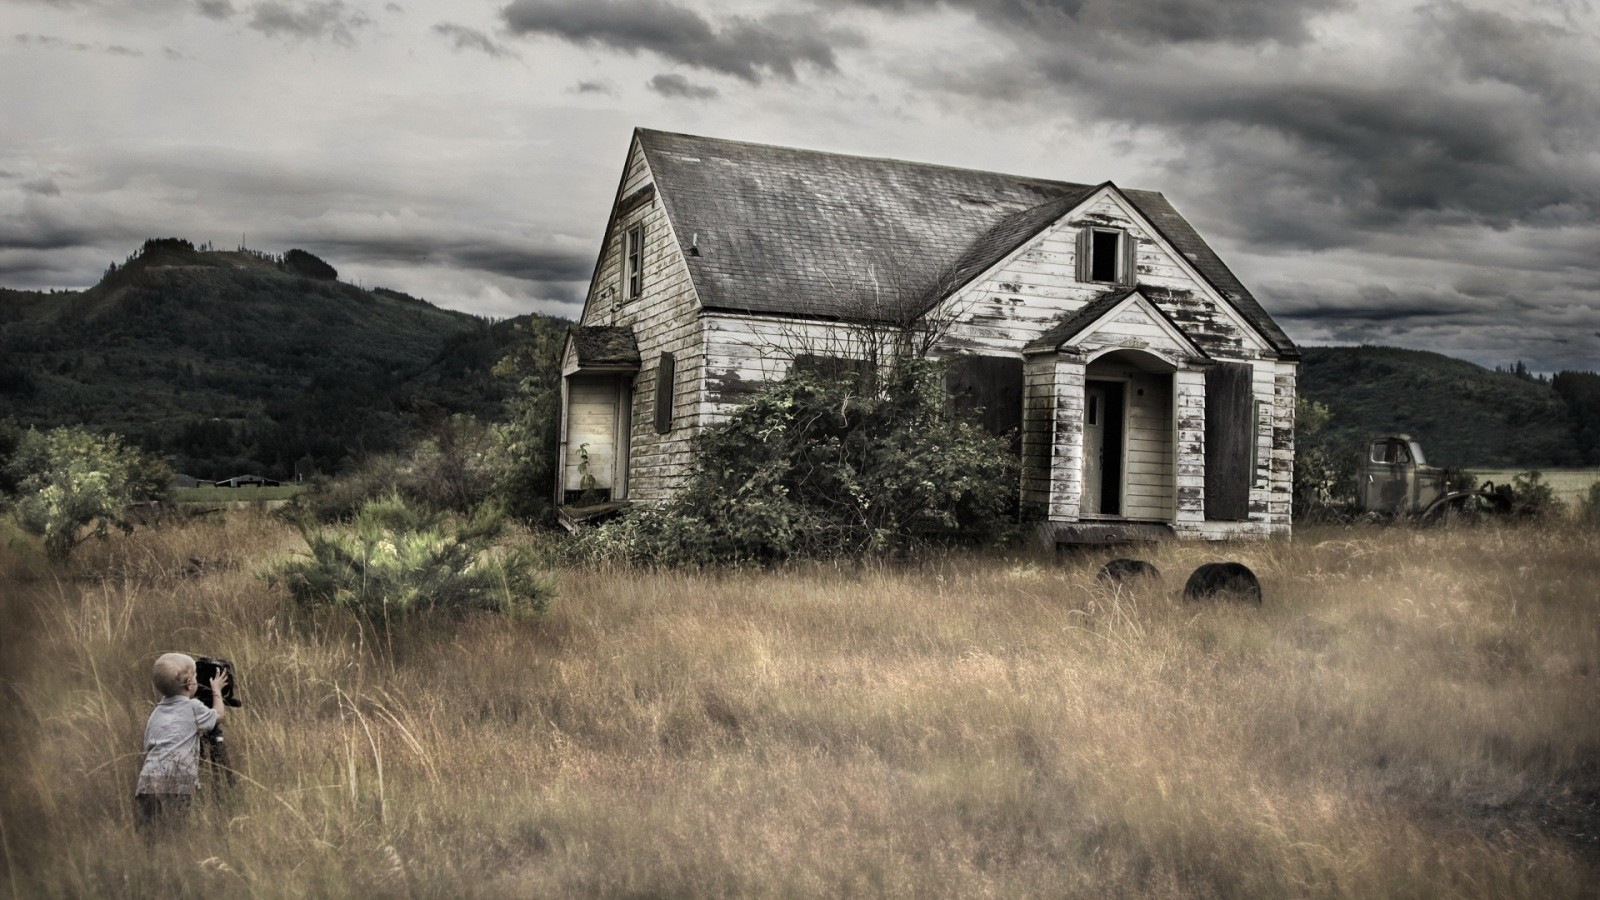 wallpapers-catalogue - house in hdr in 1600x900 resolution.